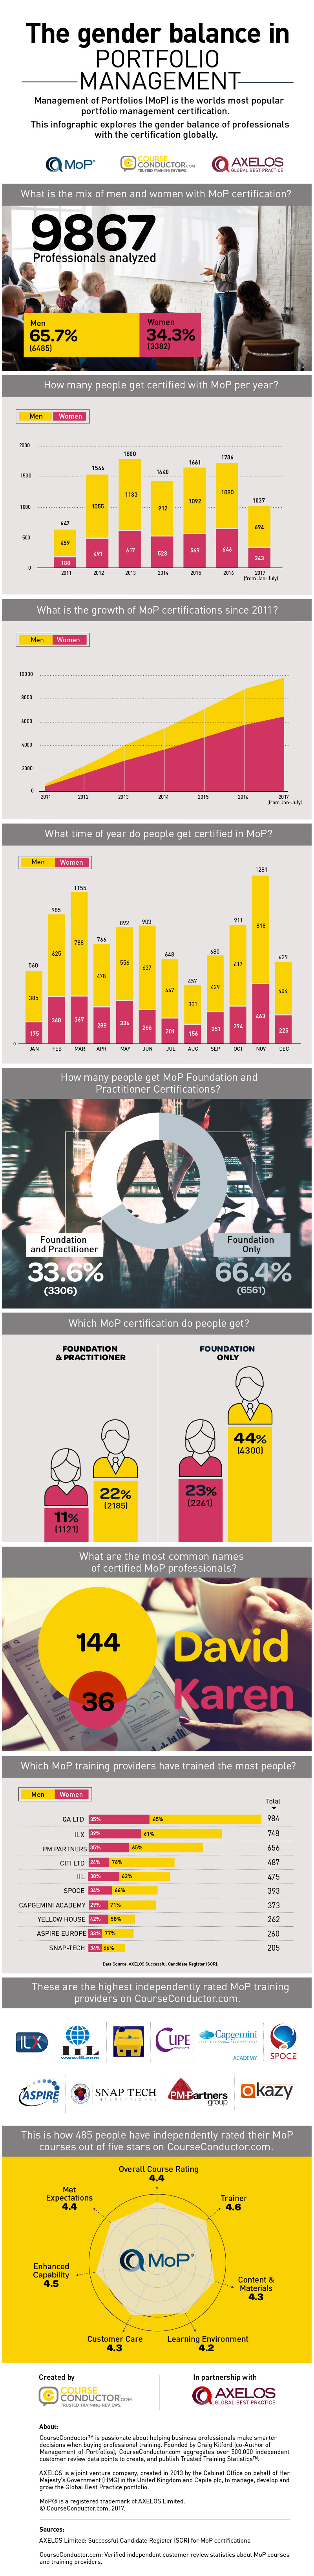 Infographic about the AXELOS MoP certification and the industry gender imbalance created by CourseConductor.com